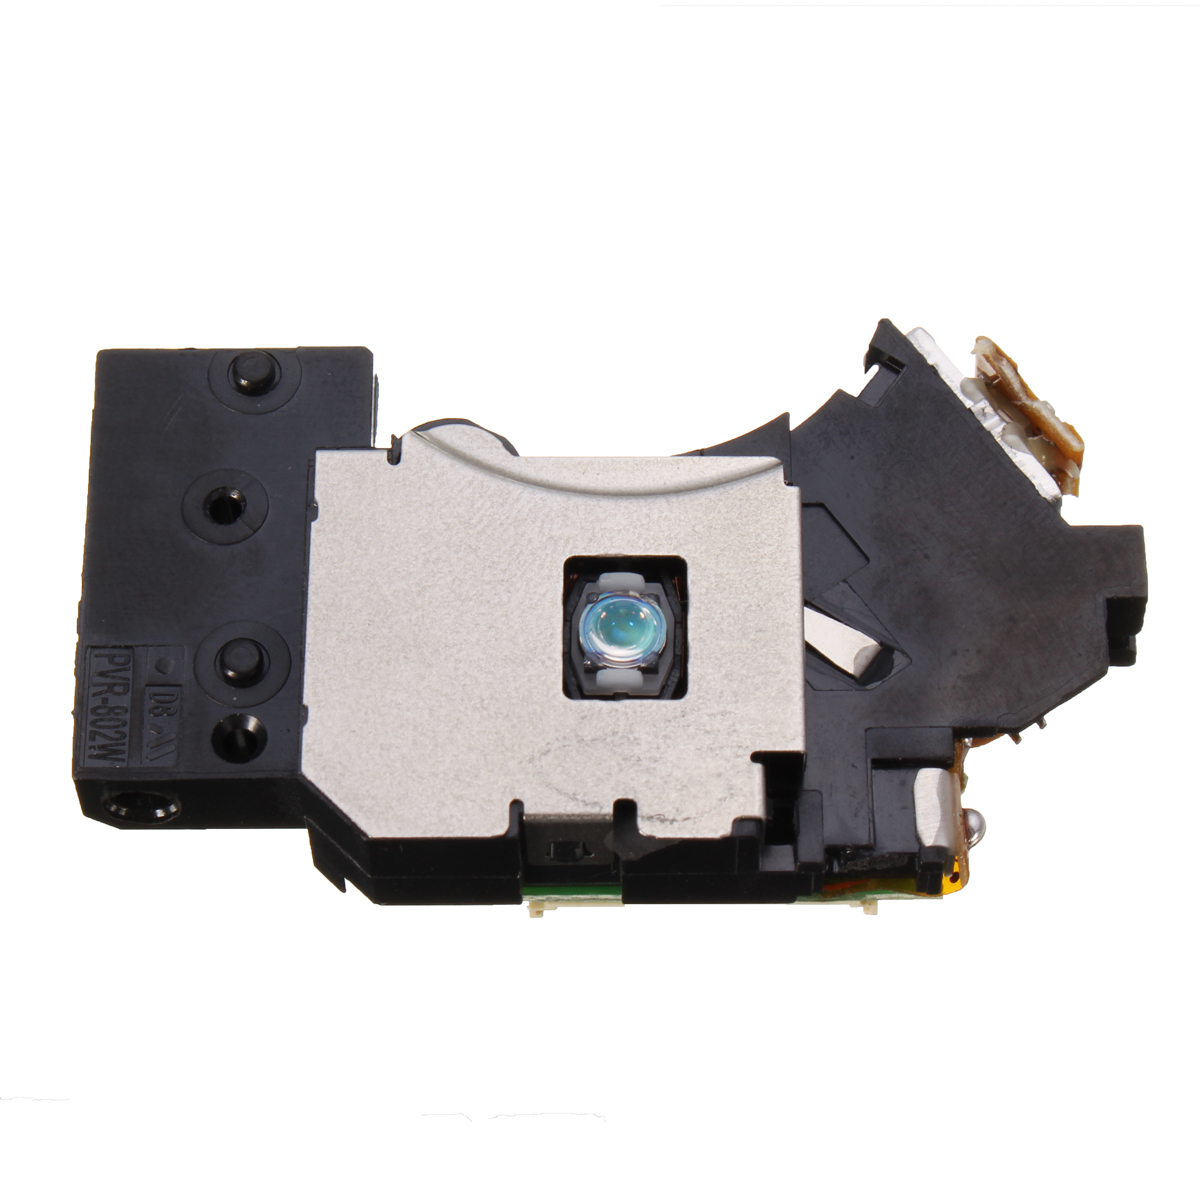 Optical Disk Laser Lens Deck Replacement PVR-802W for Sony Slim PS2 Video Game Console